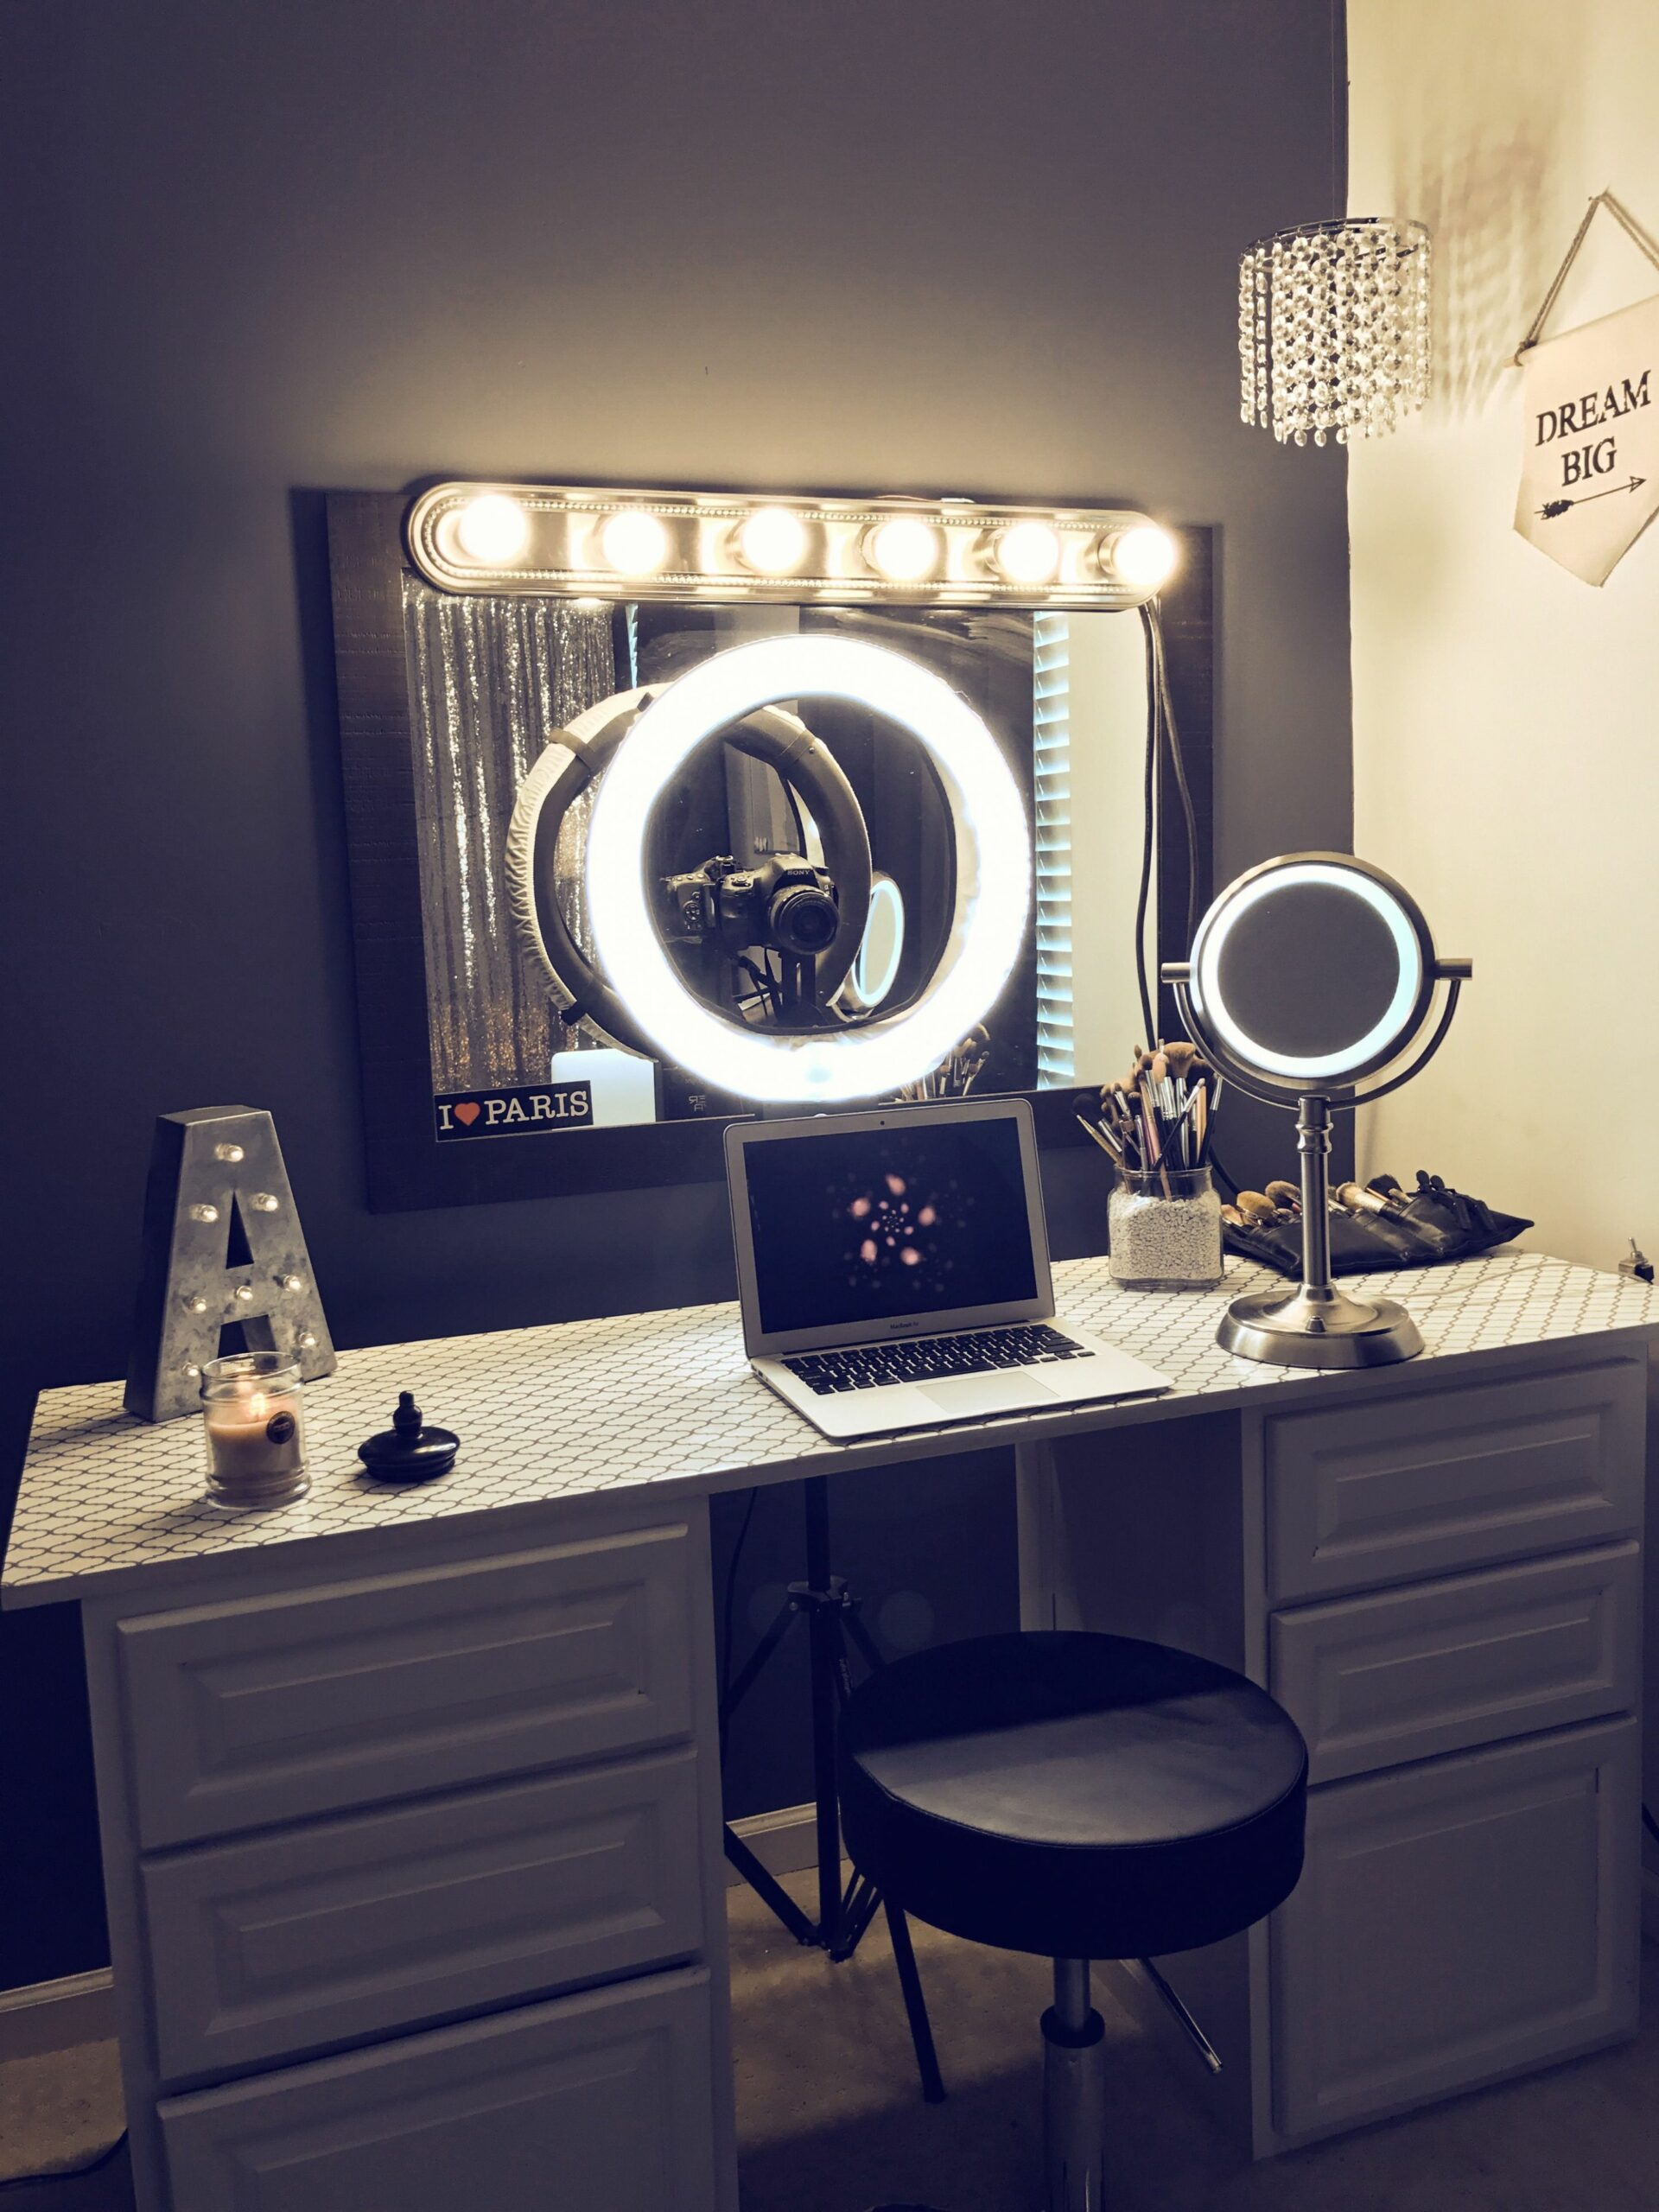 White make up vanity with ring light (With images) | Vanity makeup ..